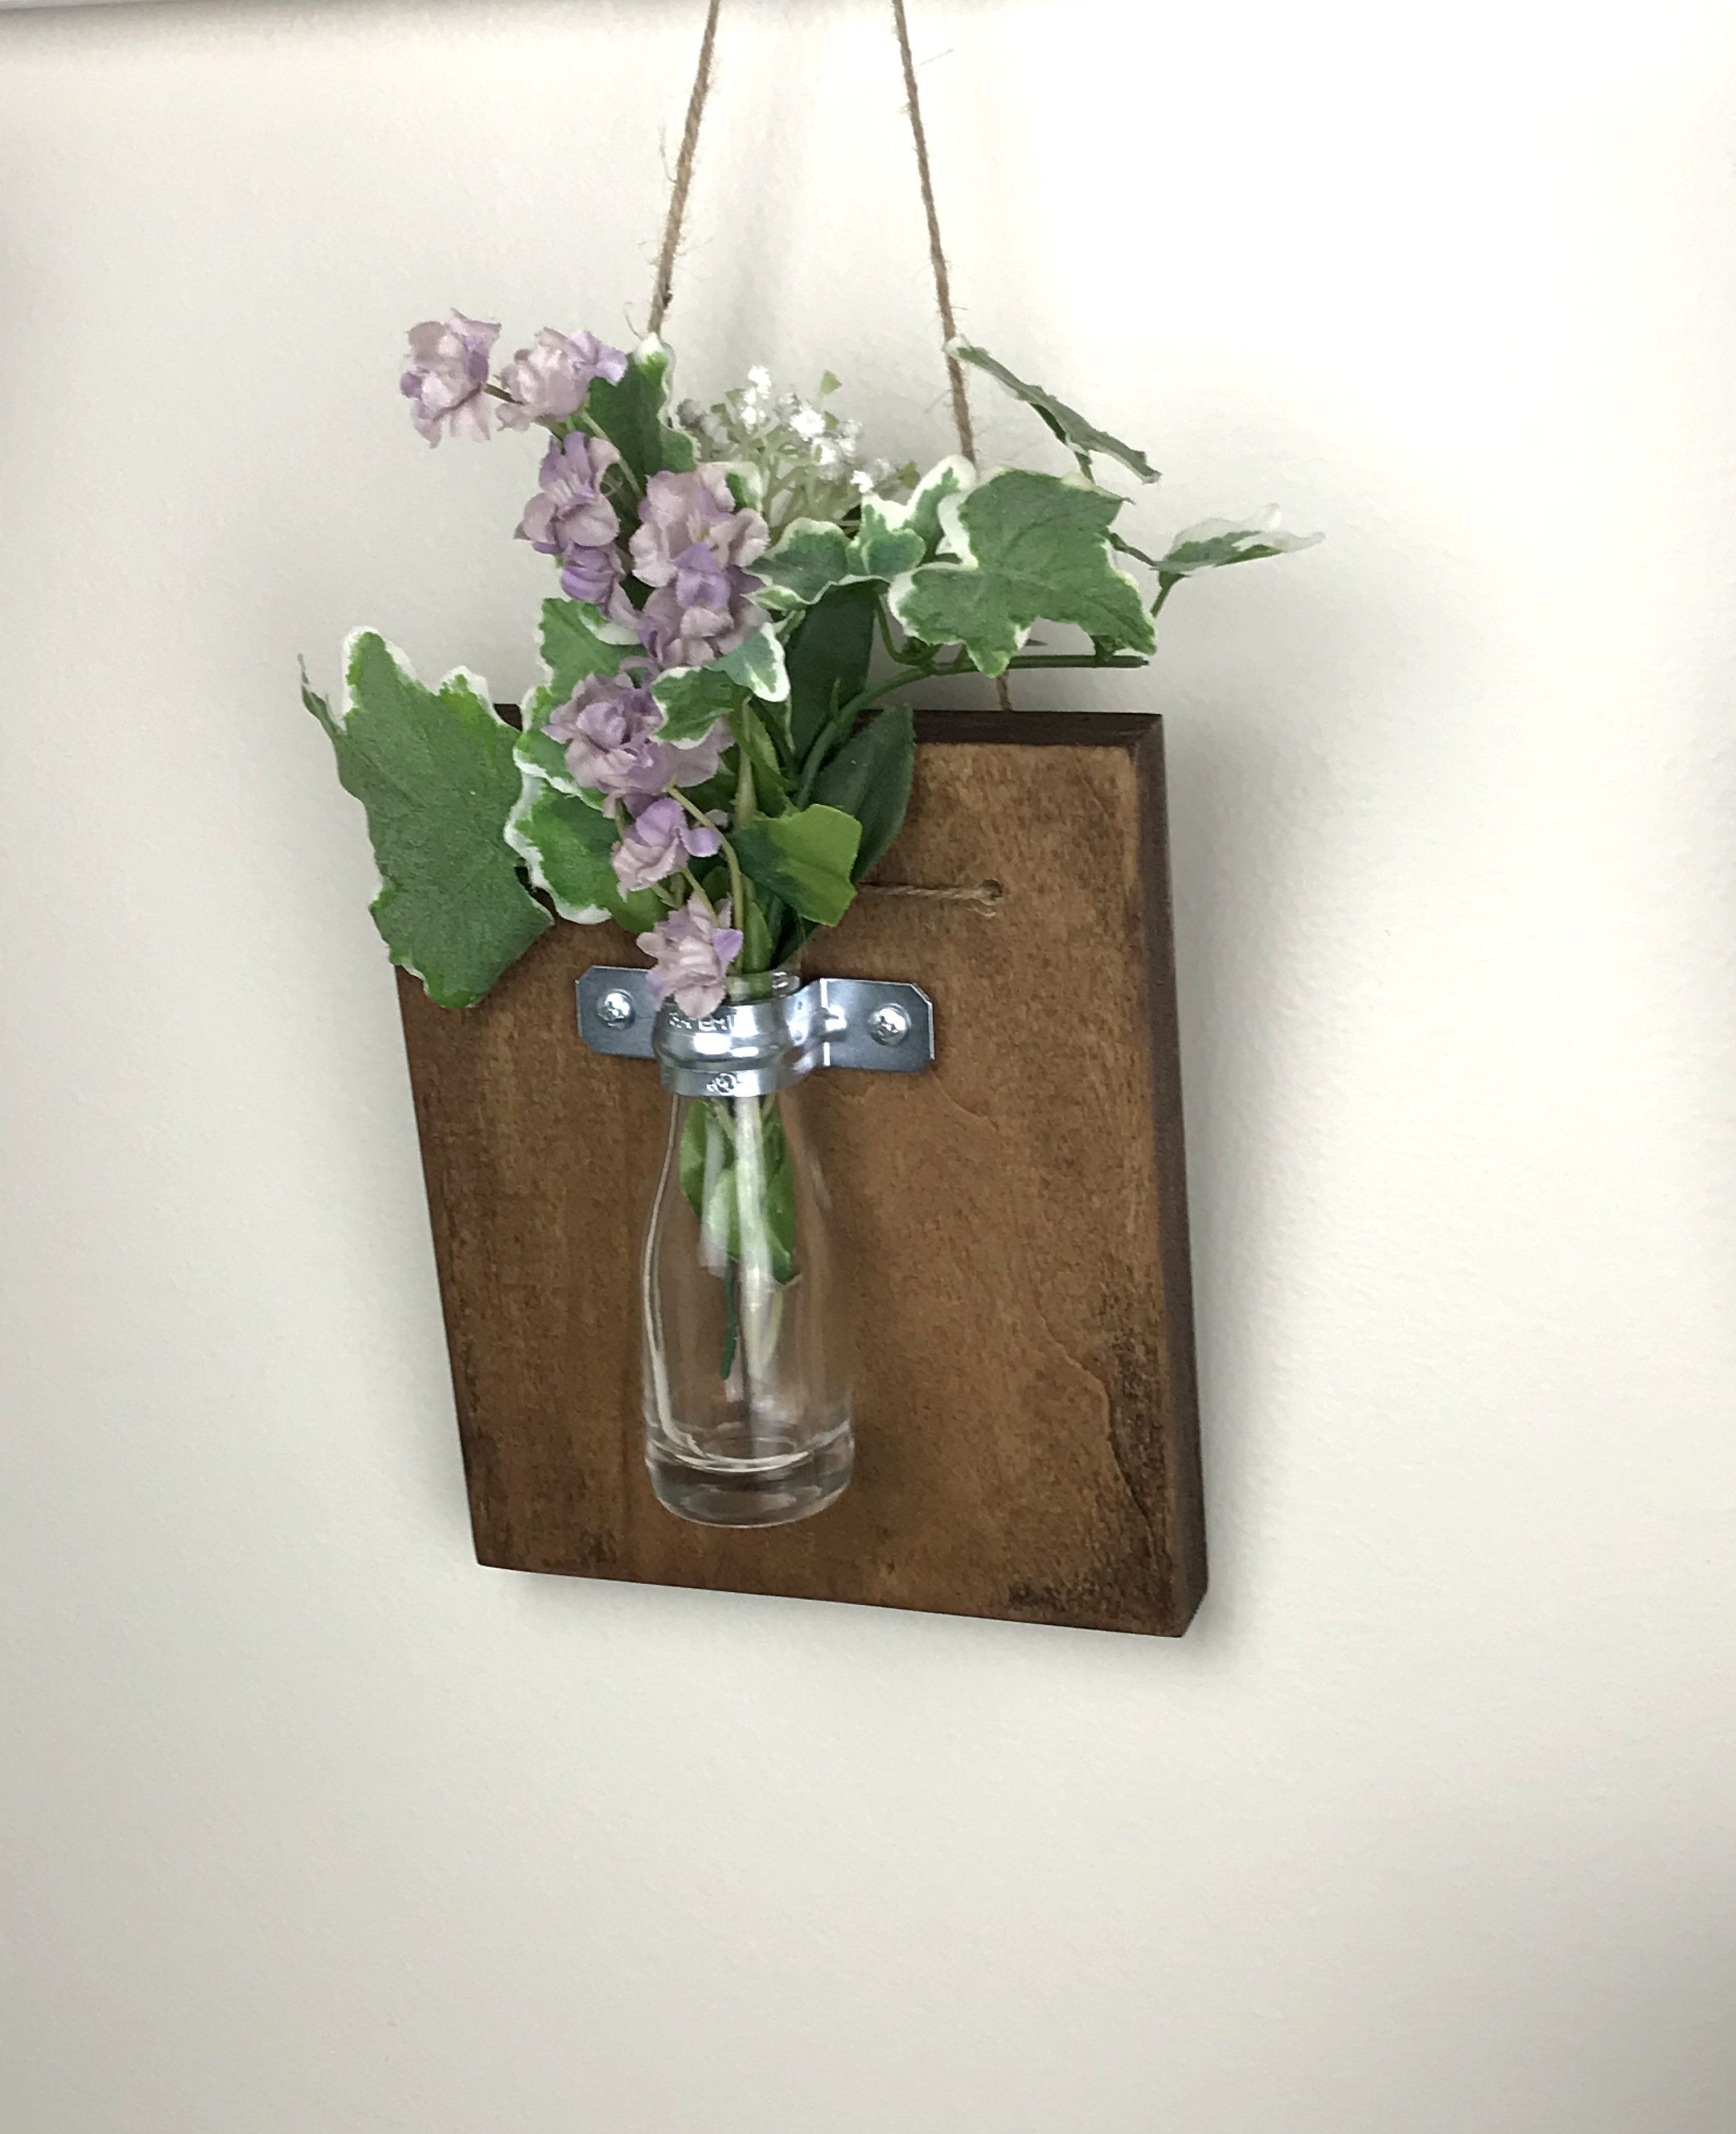 Wall Vase Sconce Farmhouse Wood Wall Vase Hanging Vase Bud Vase Flower Vases Wall Vases Gift For Her Gift Under 20 Housewarming Gift Hanging Vases Wall Vase Decorative Wall Sconces